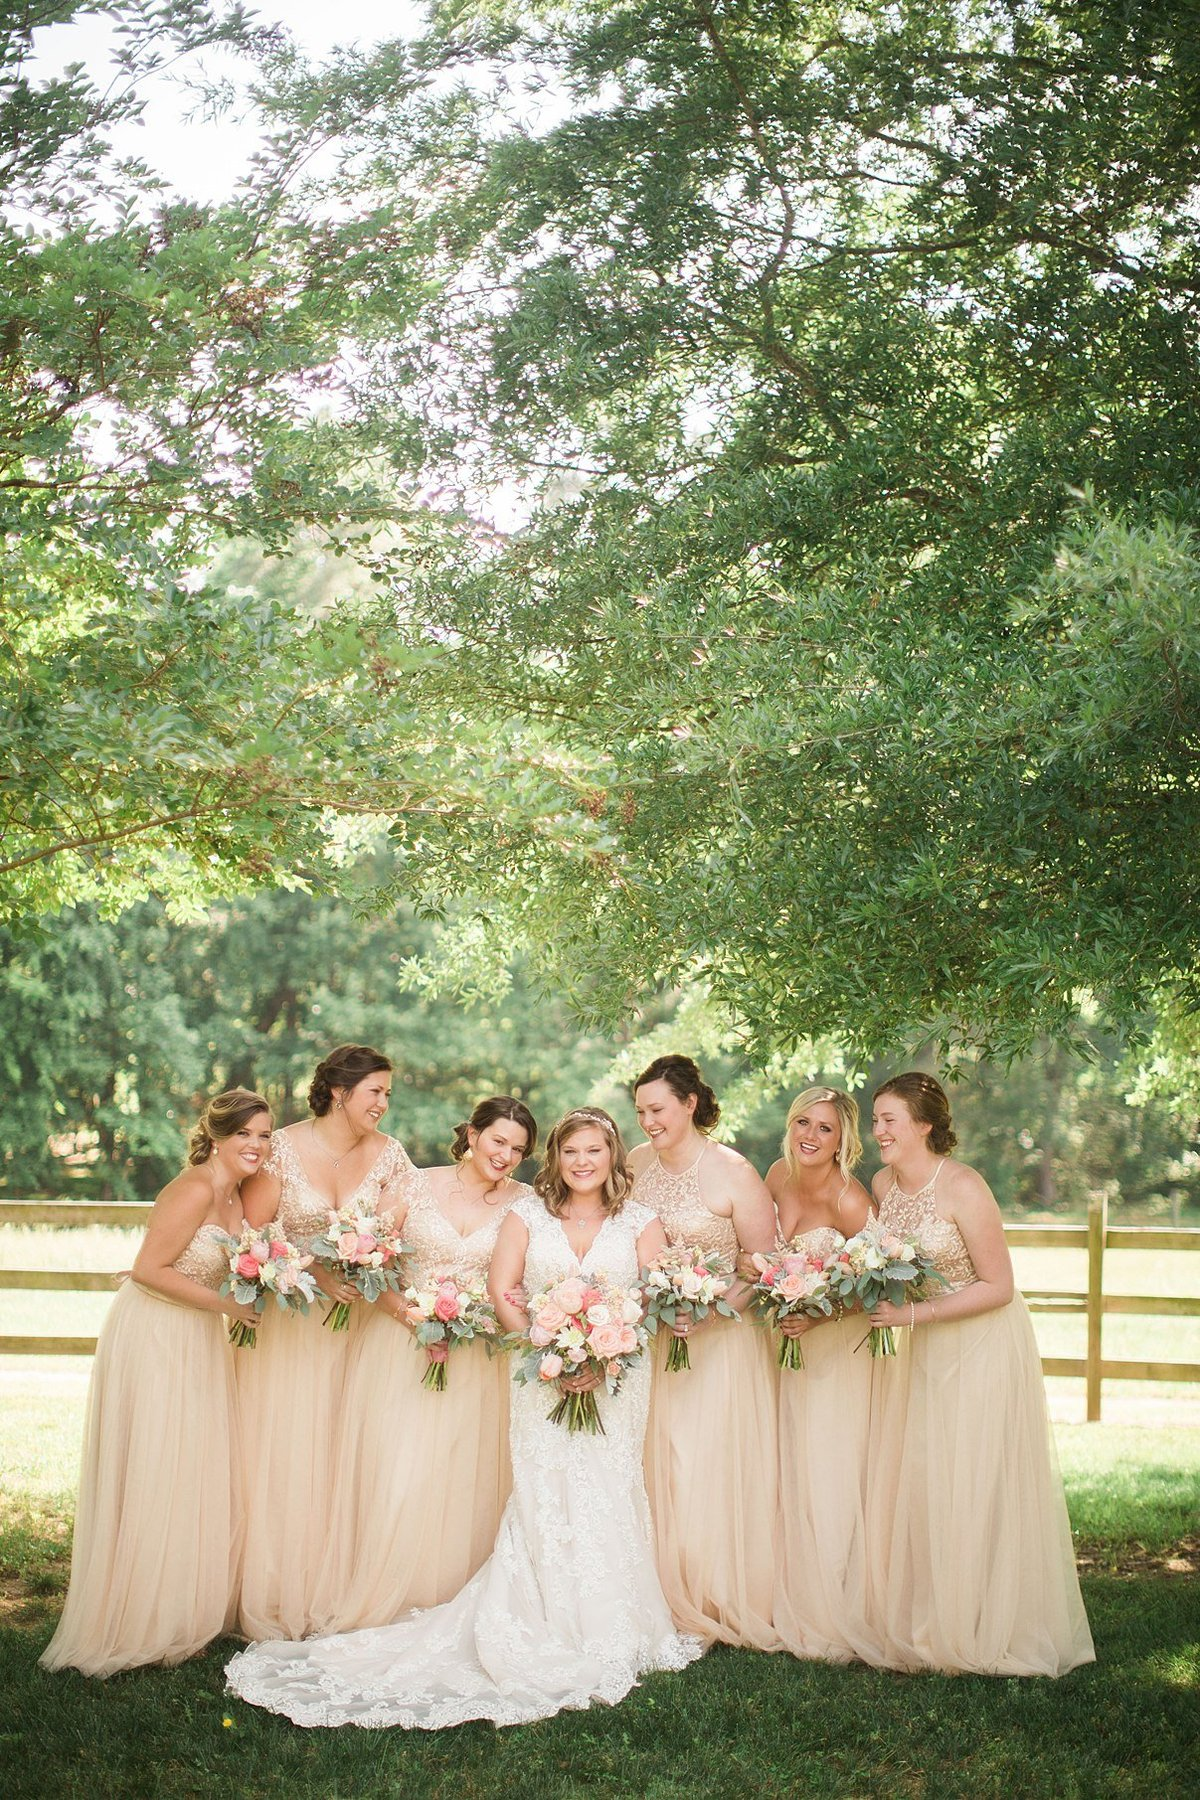 L & J Chapel in the Woods Raleigh NC Rustic Vintage Country Wedding Andrew & Tianna Photography-214